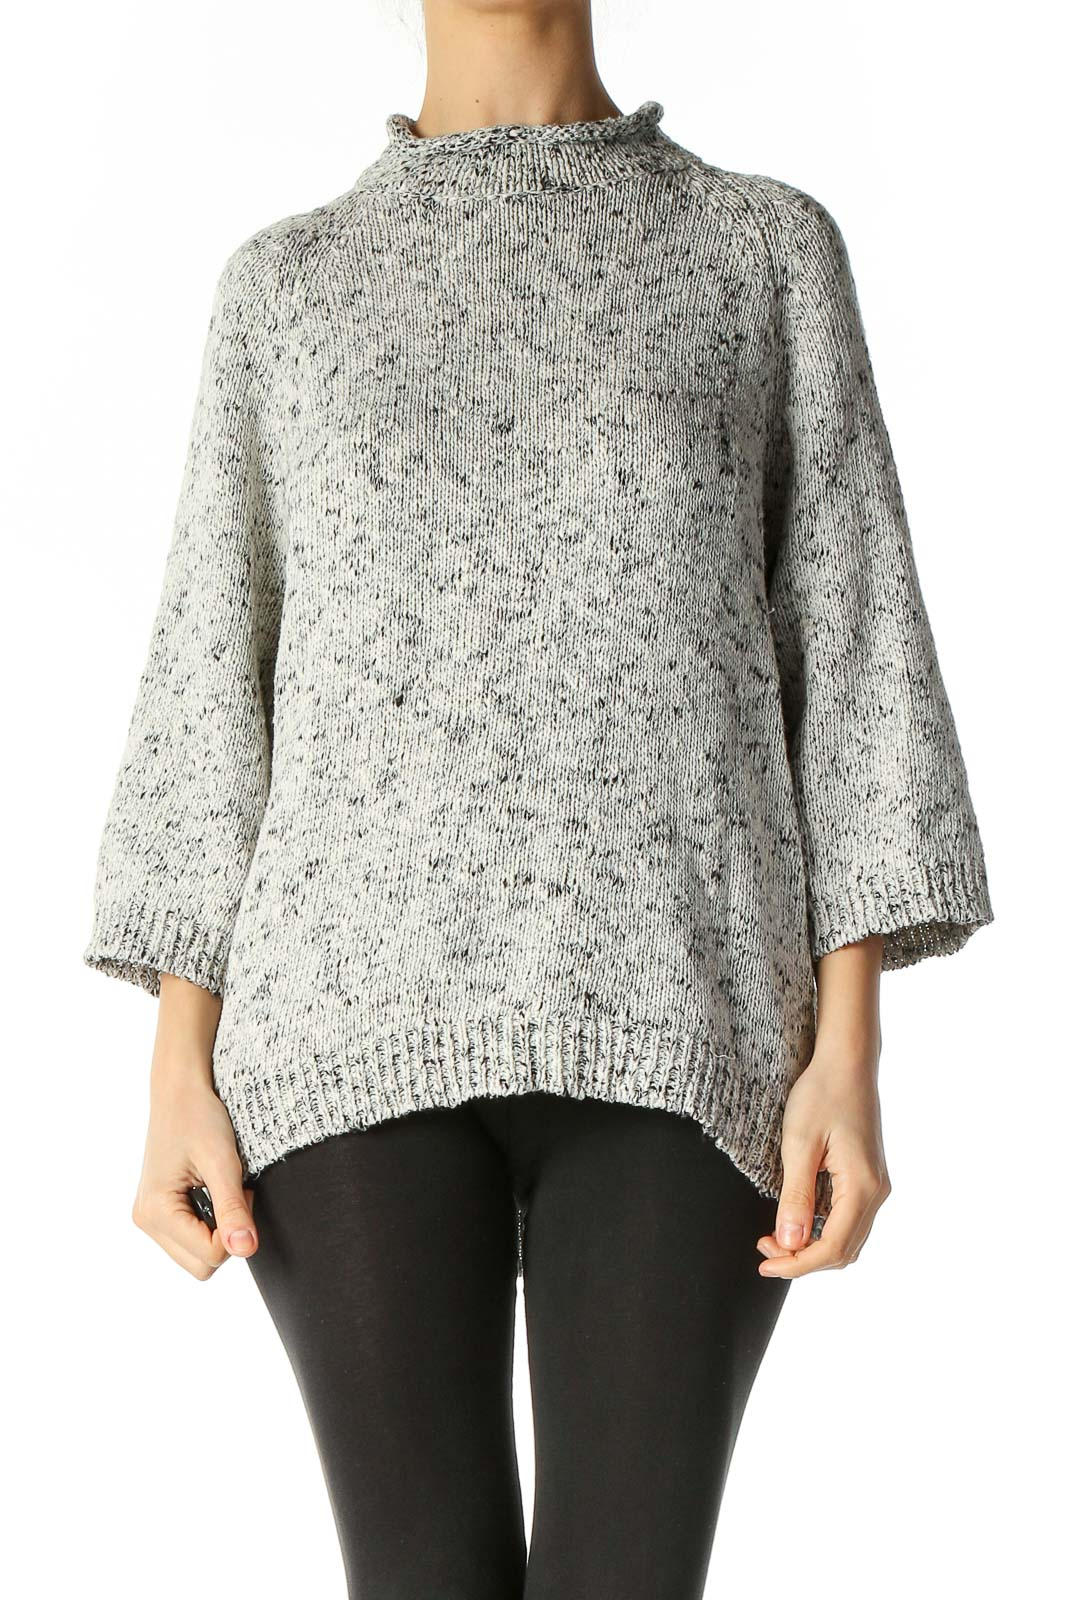 Gray Textured Retro Sweater Front